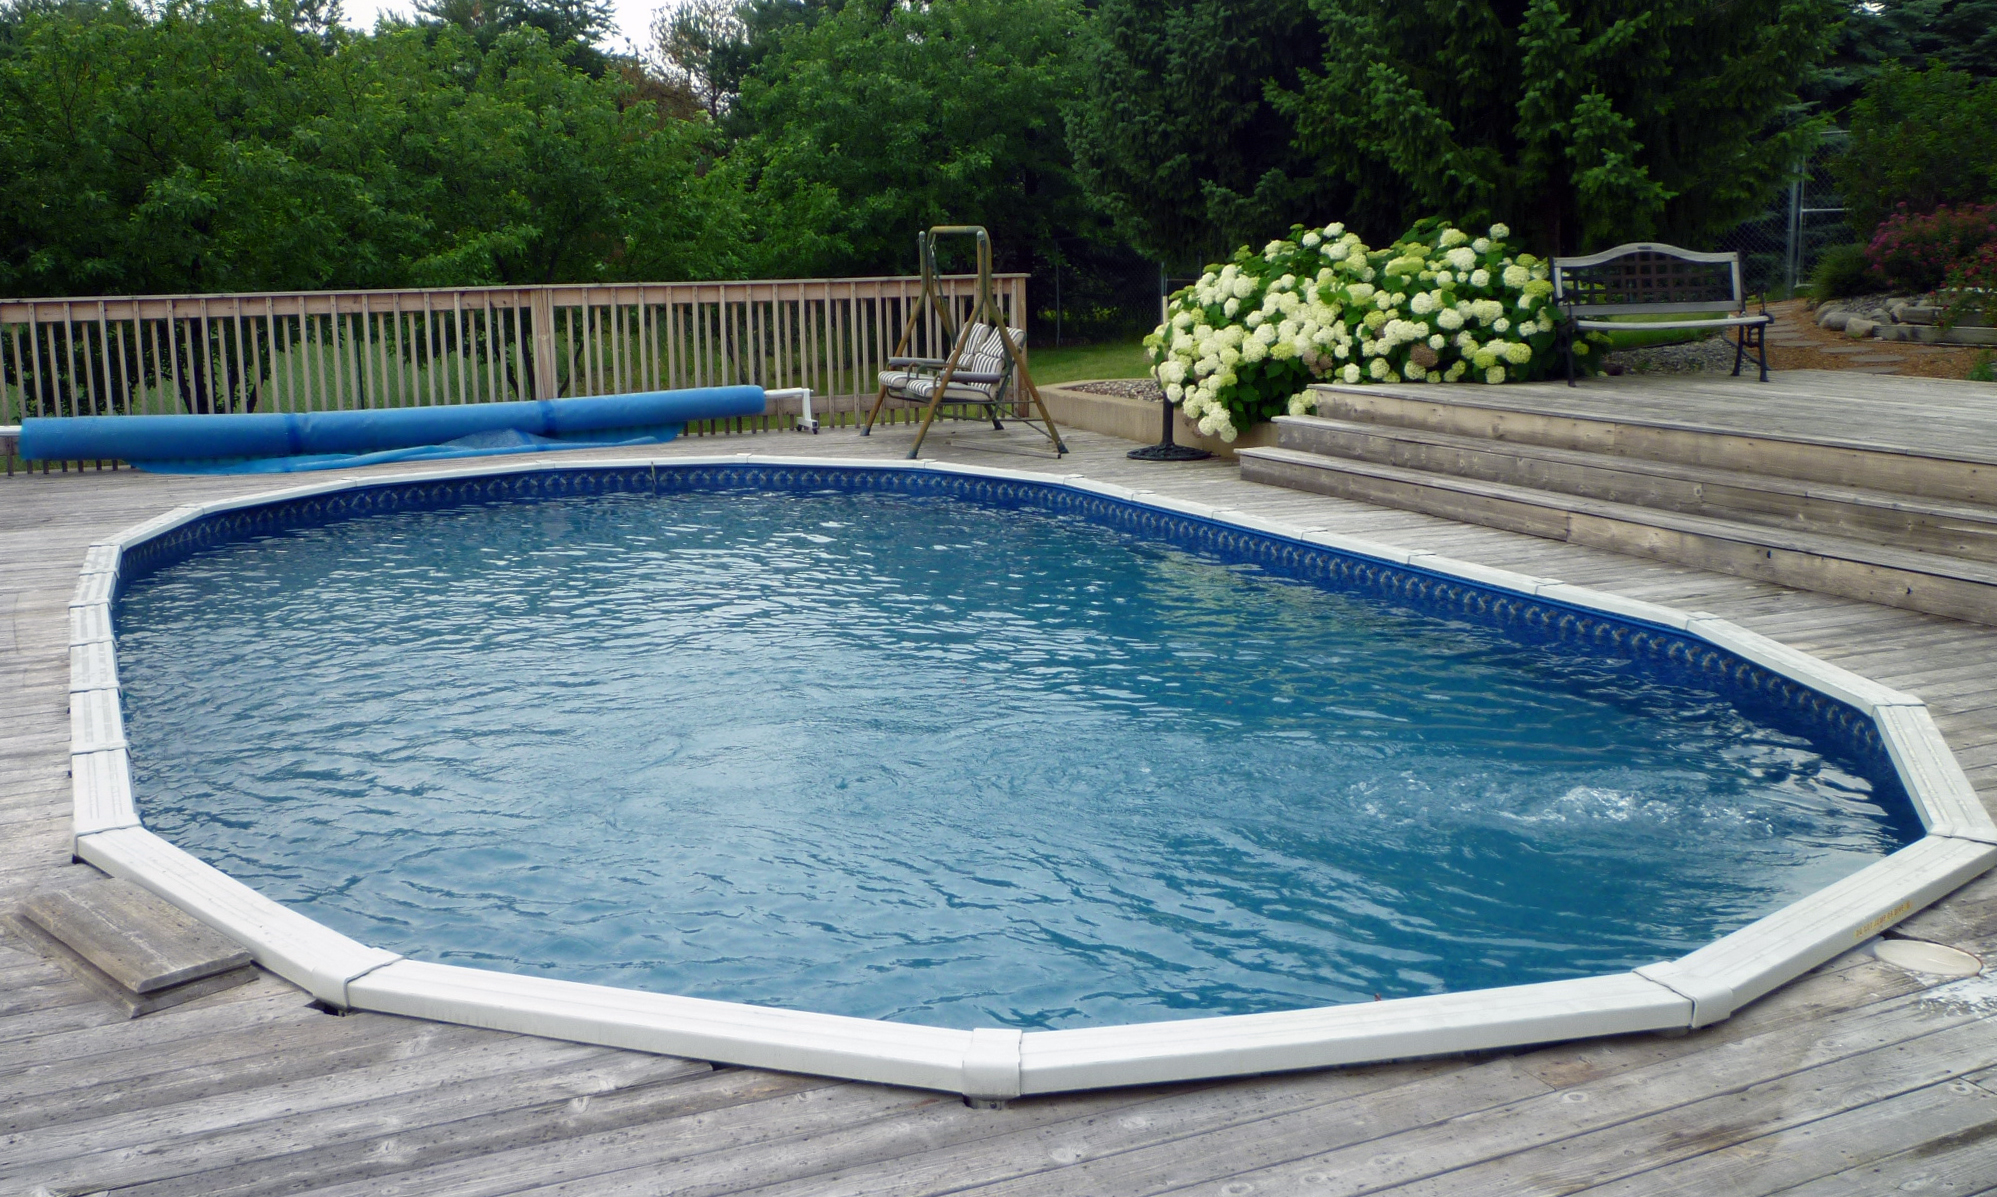 Fixing Up the Swimming Pool – It's Hot Outside!